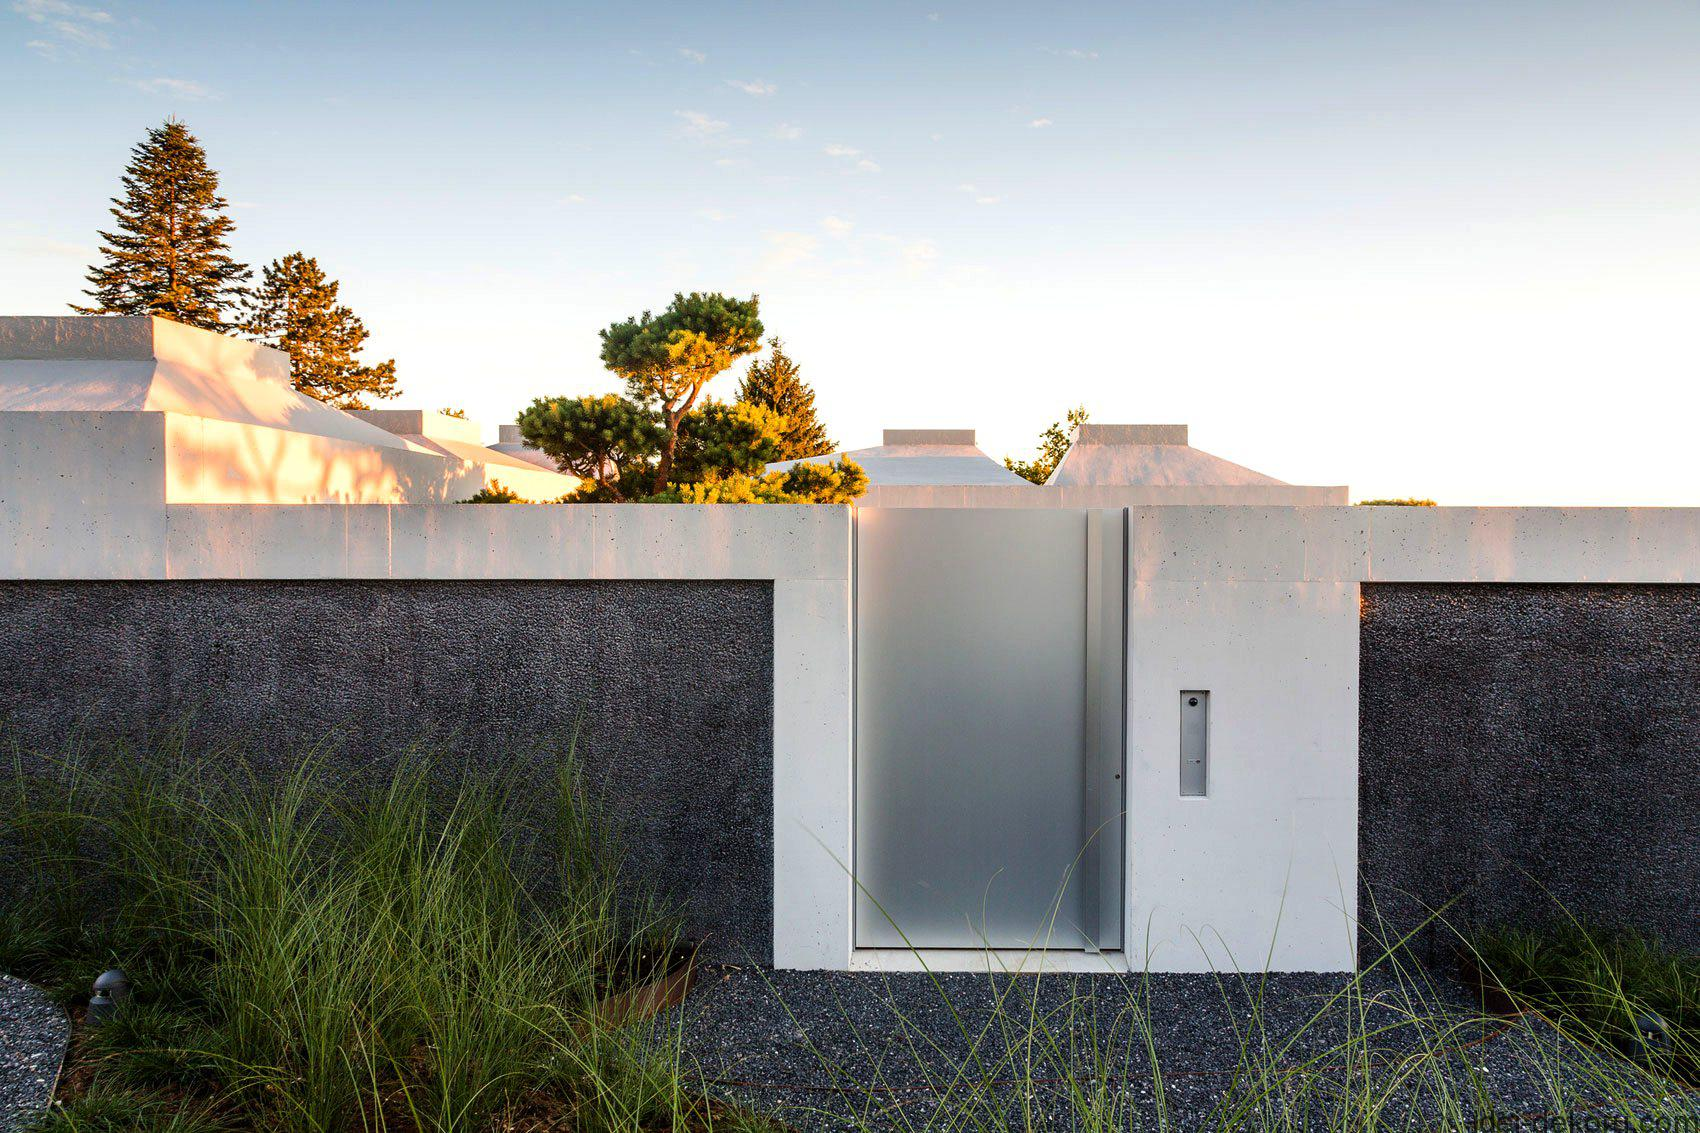 contemporary-fences-design-for-houses-courtyard-with-glossy-material-between-grey-concrete-border-near-short-green-plantations-and-grey-yard